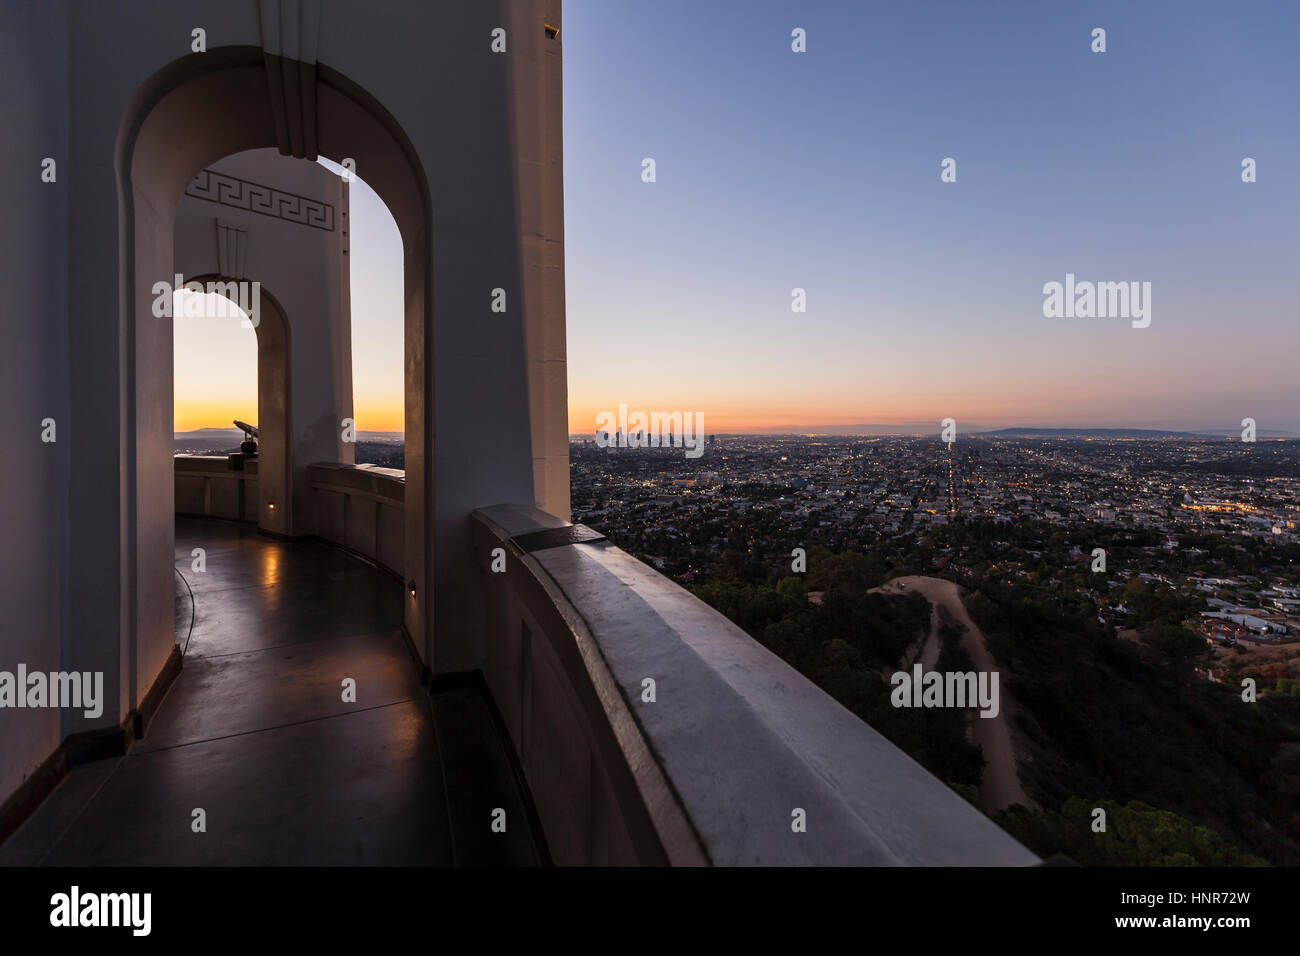 Editorial sunrise cityscape view from Los Angeles's Griffith Park Observatory. Stock Photo